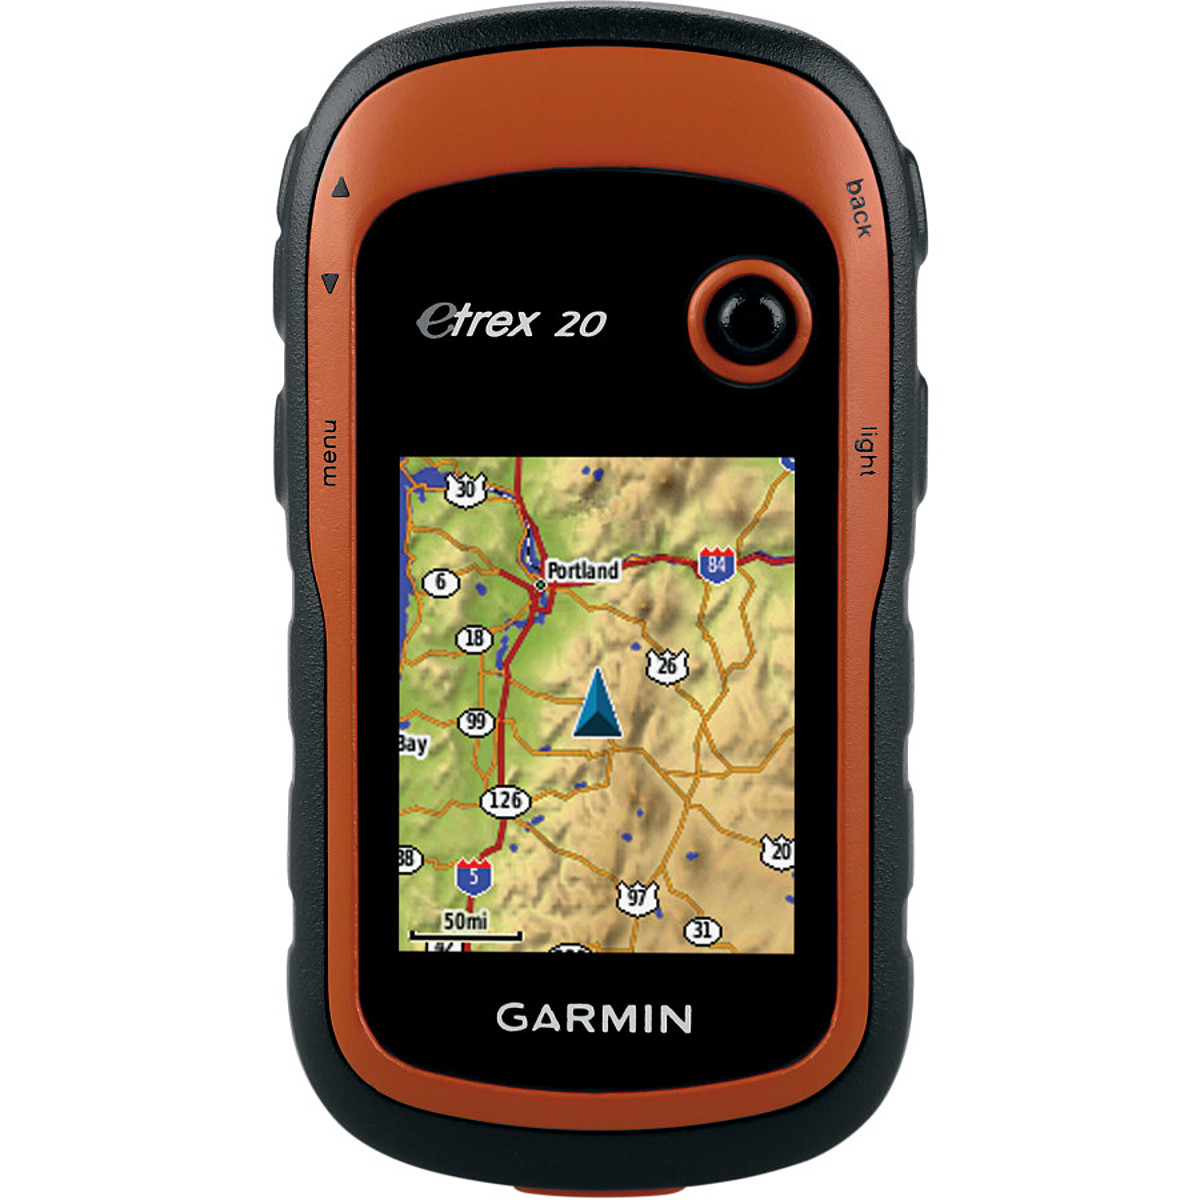 photo: Garmin eTrex 20 handheld gps receiver